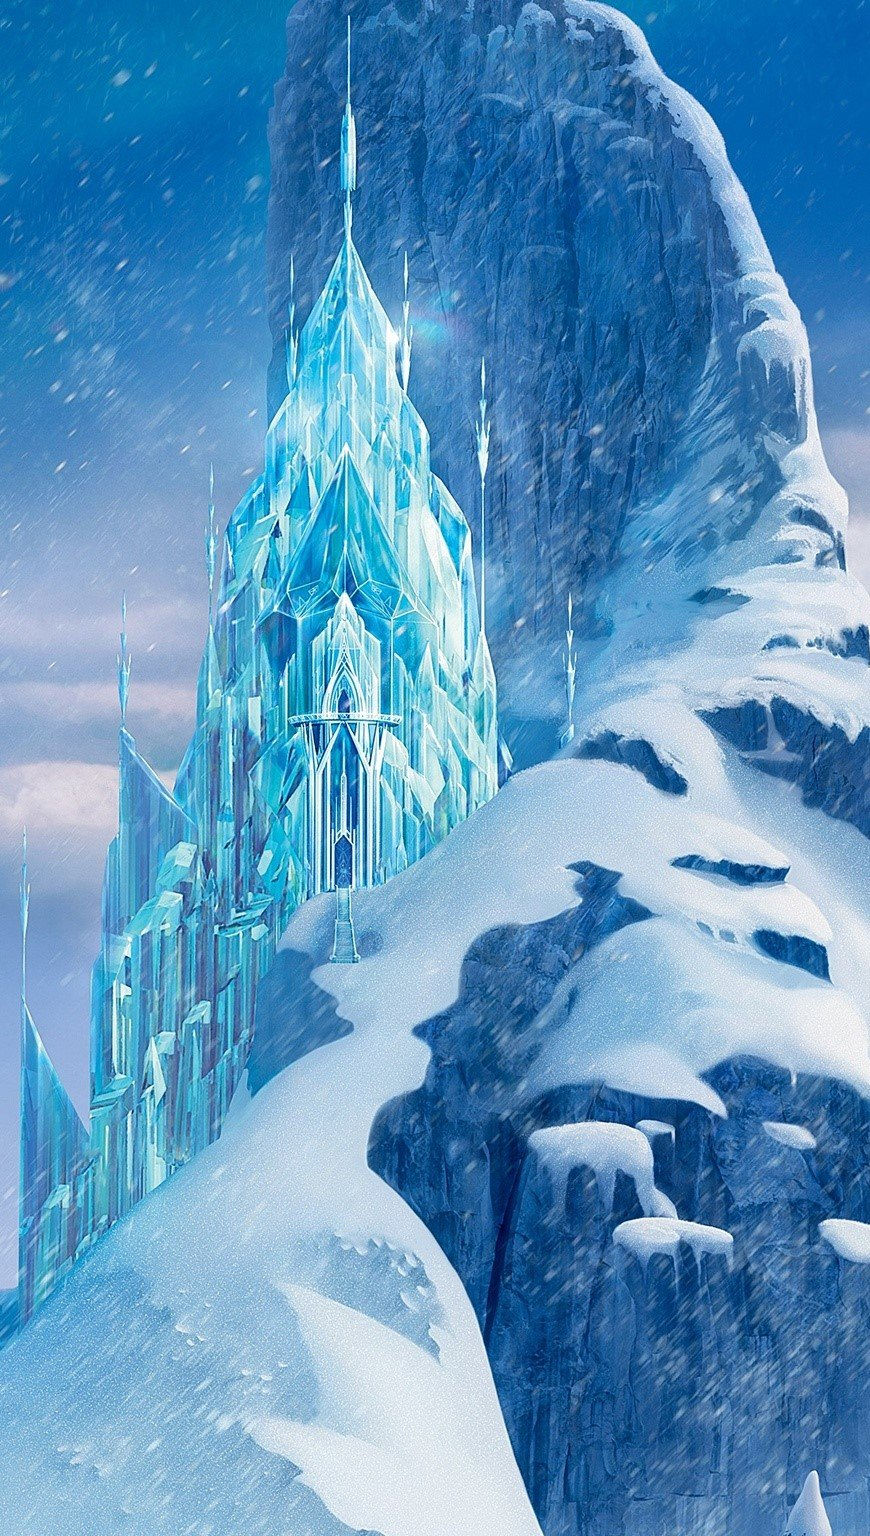 Wallpaper Ice Castle in Frozen Vertical